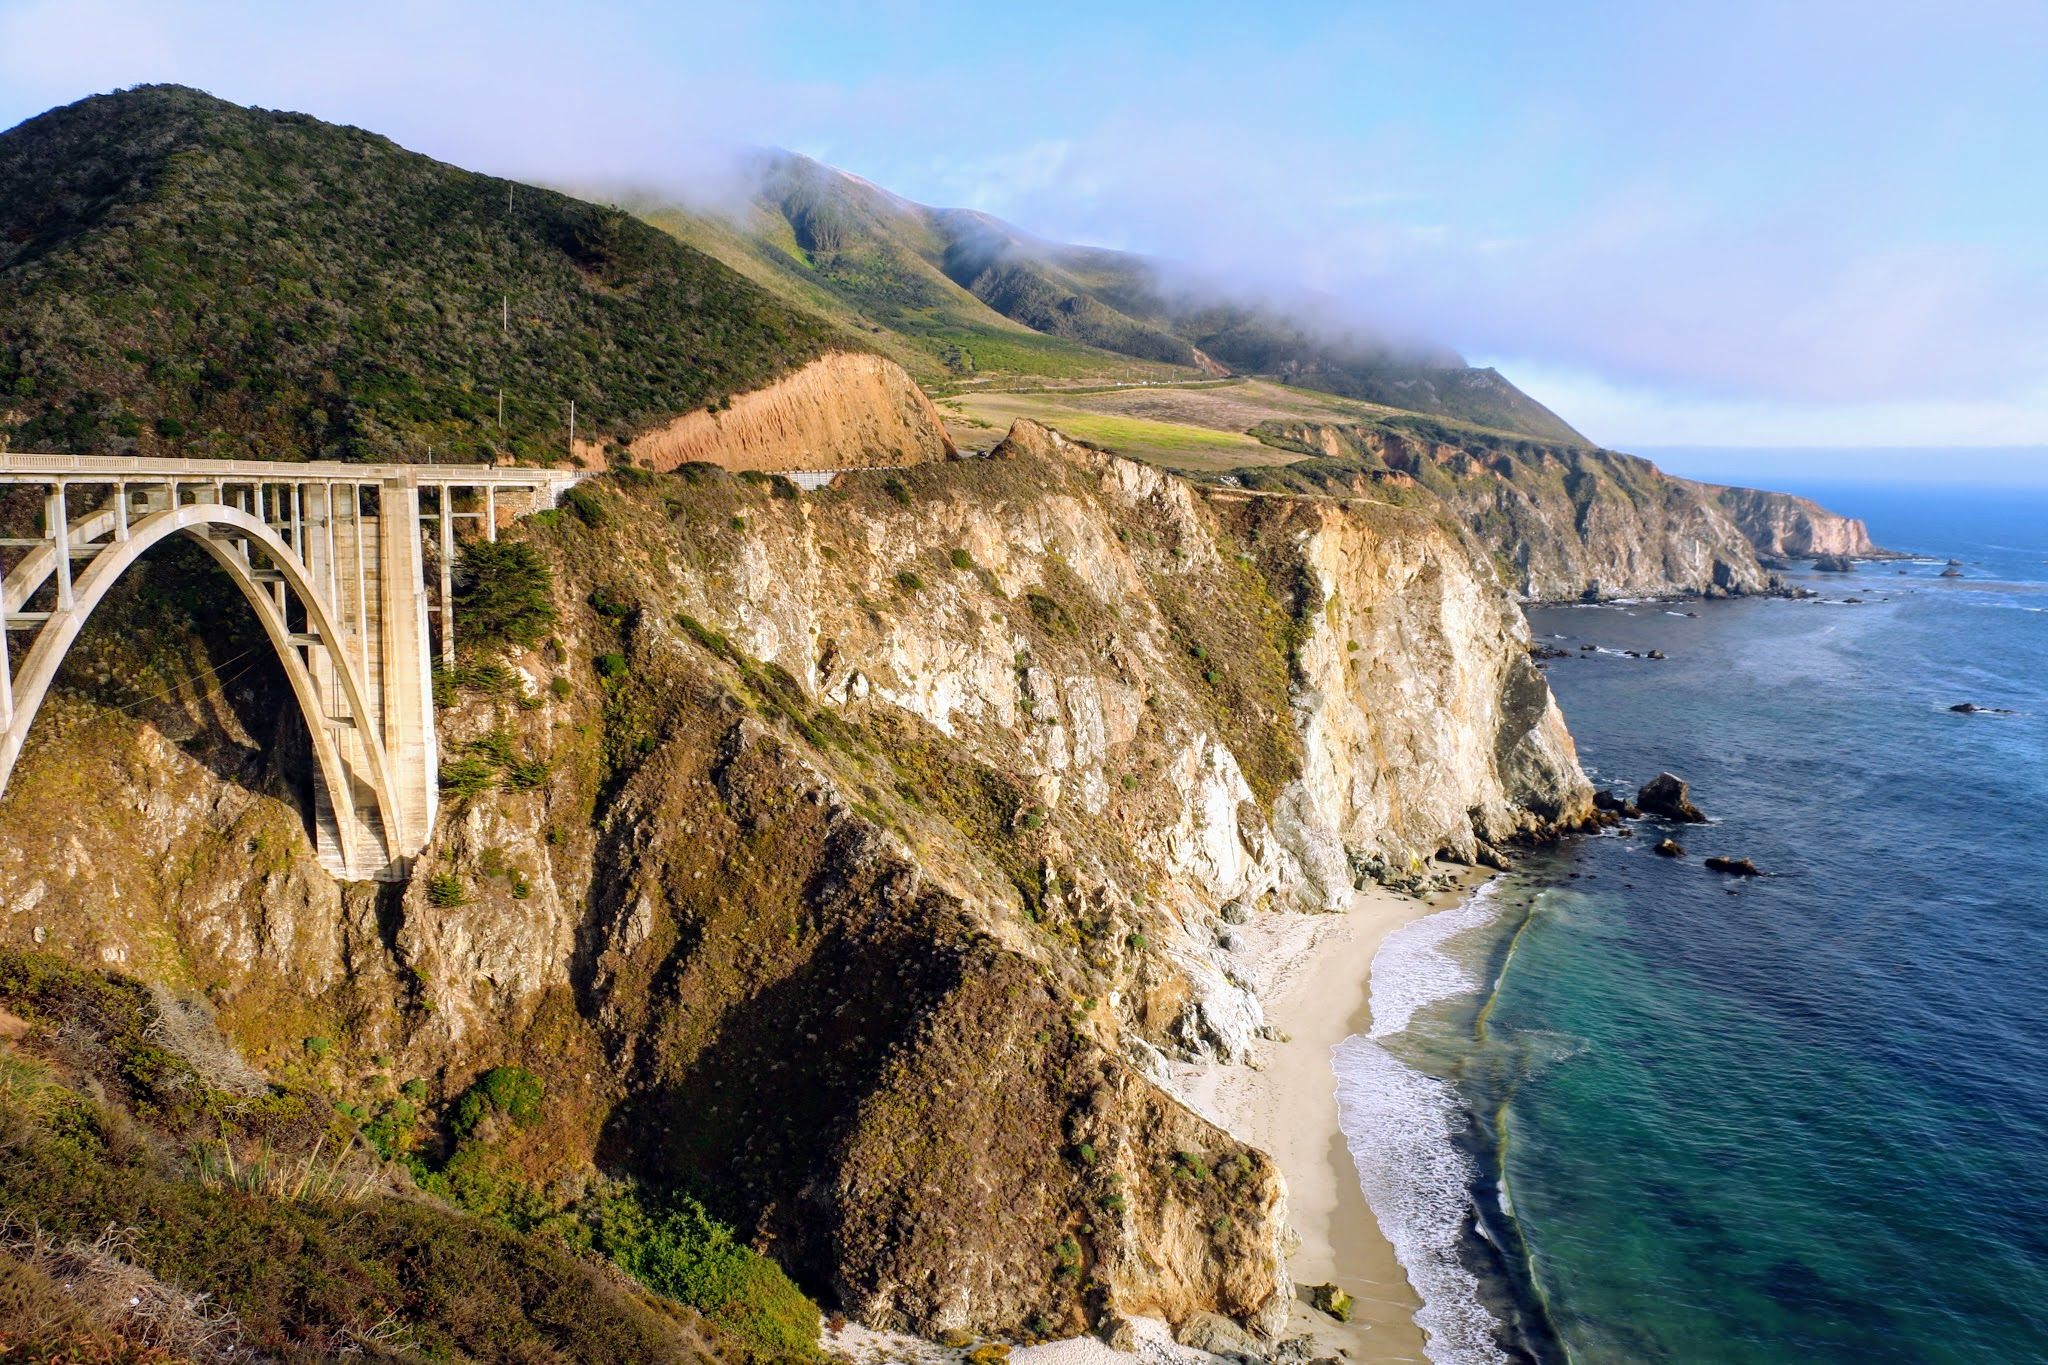 De Bixby Creek Bridge